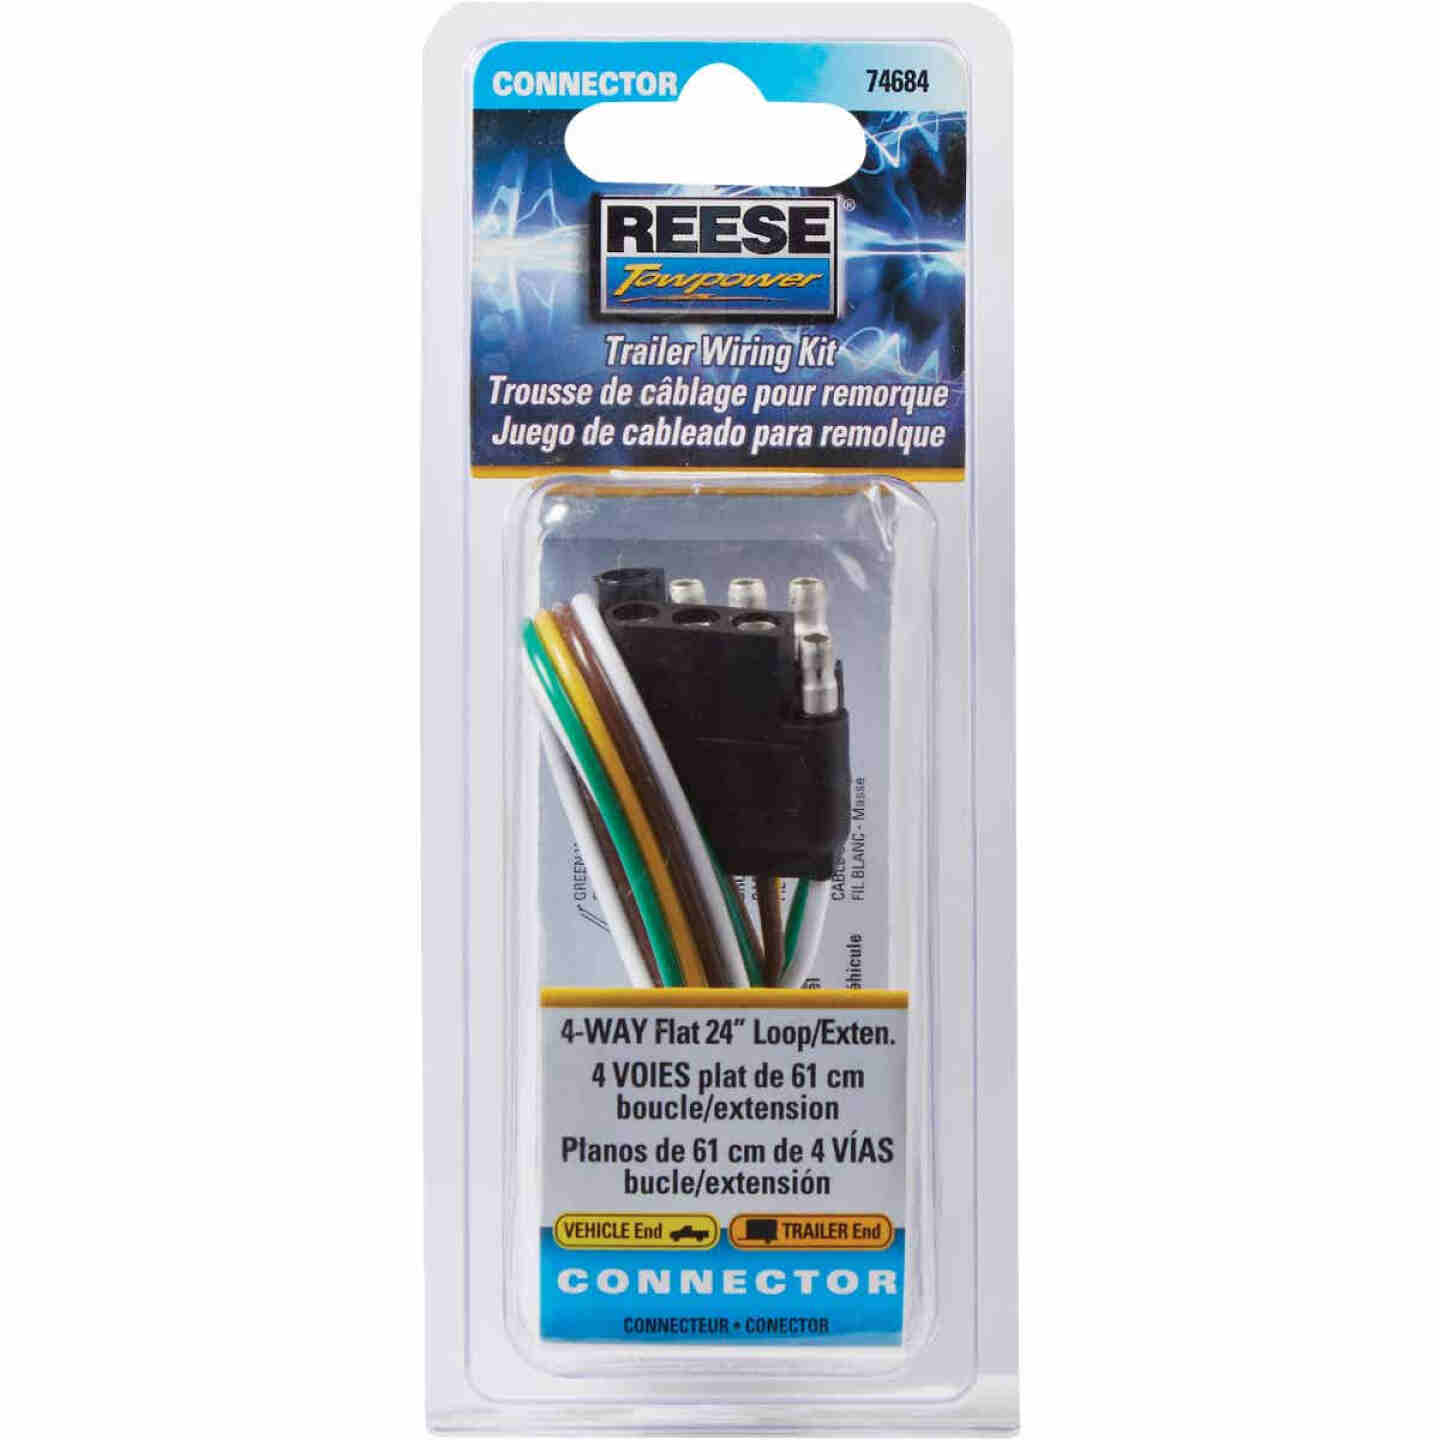 Reese Towpower 4-Flat 24 In. Loop Vehicle/Trailer Connector Set Image 2